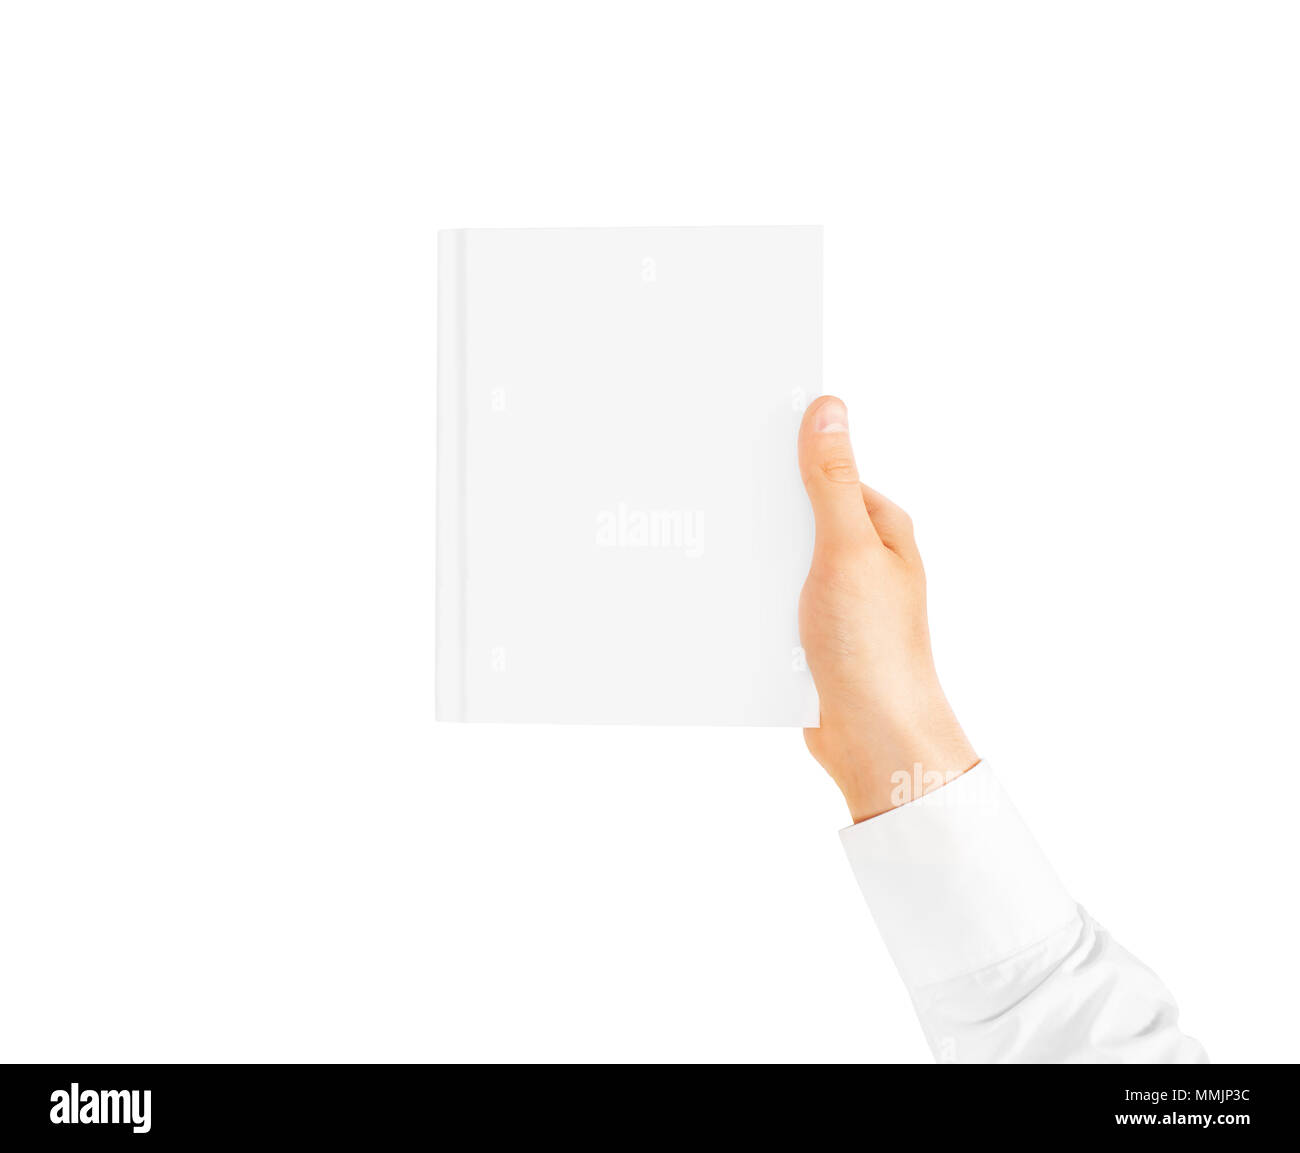 Hand In White Shirt Sleeve Holding Closed Blank Book Cover Mockup In